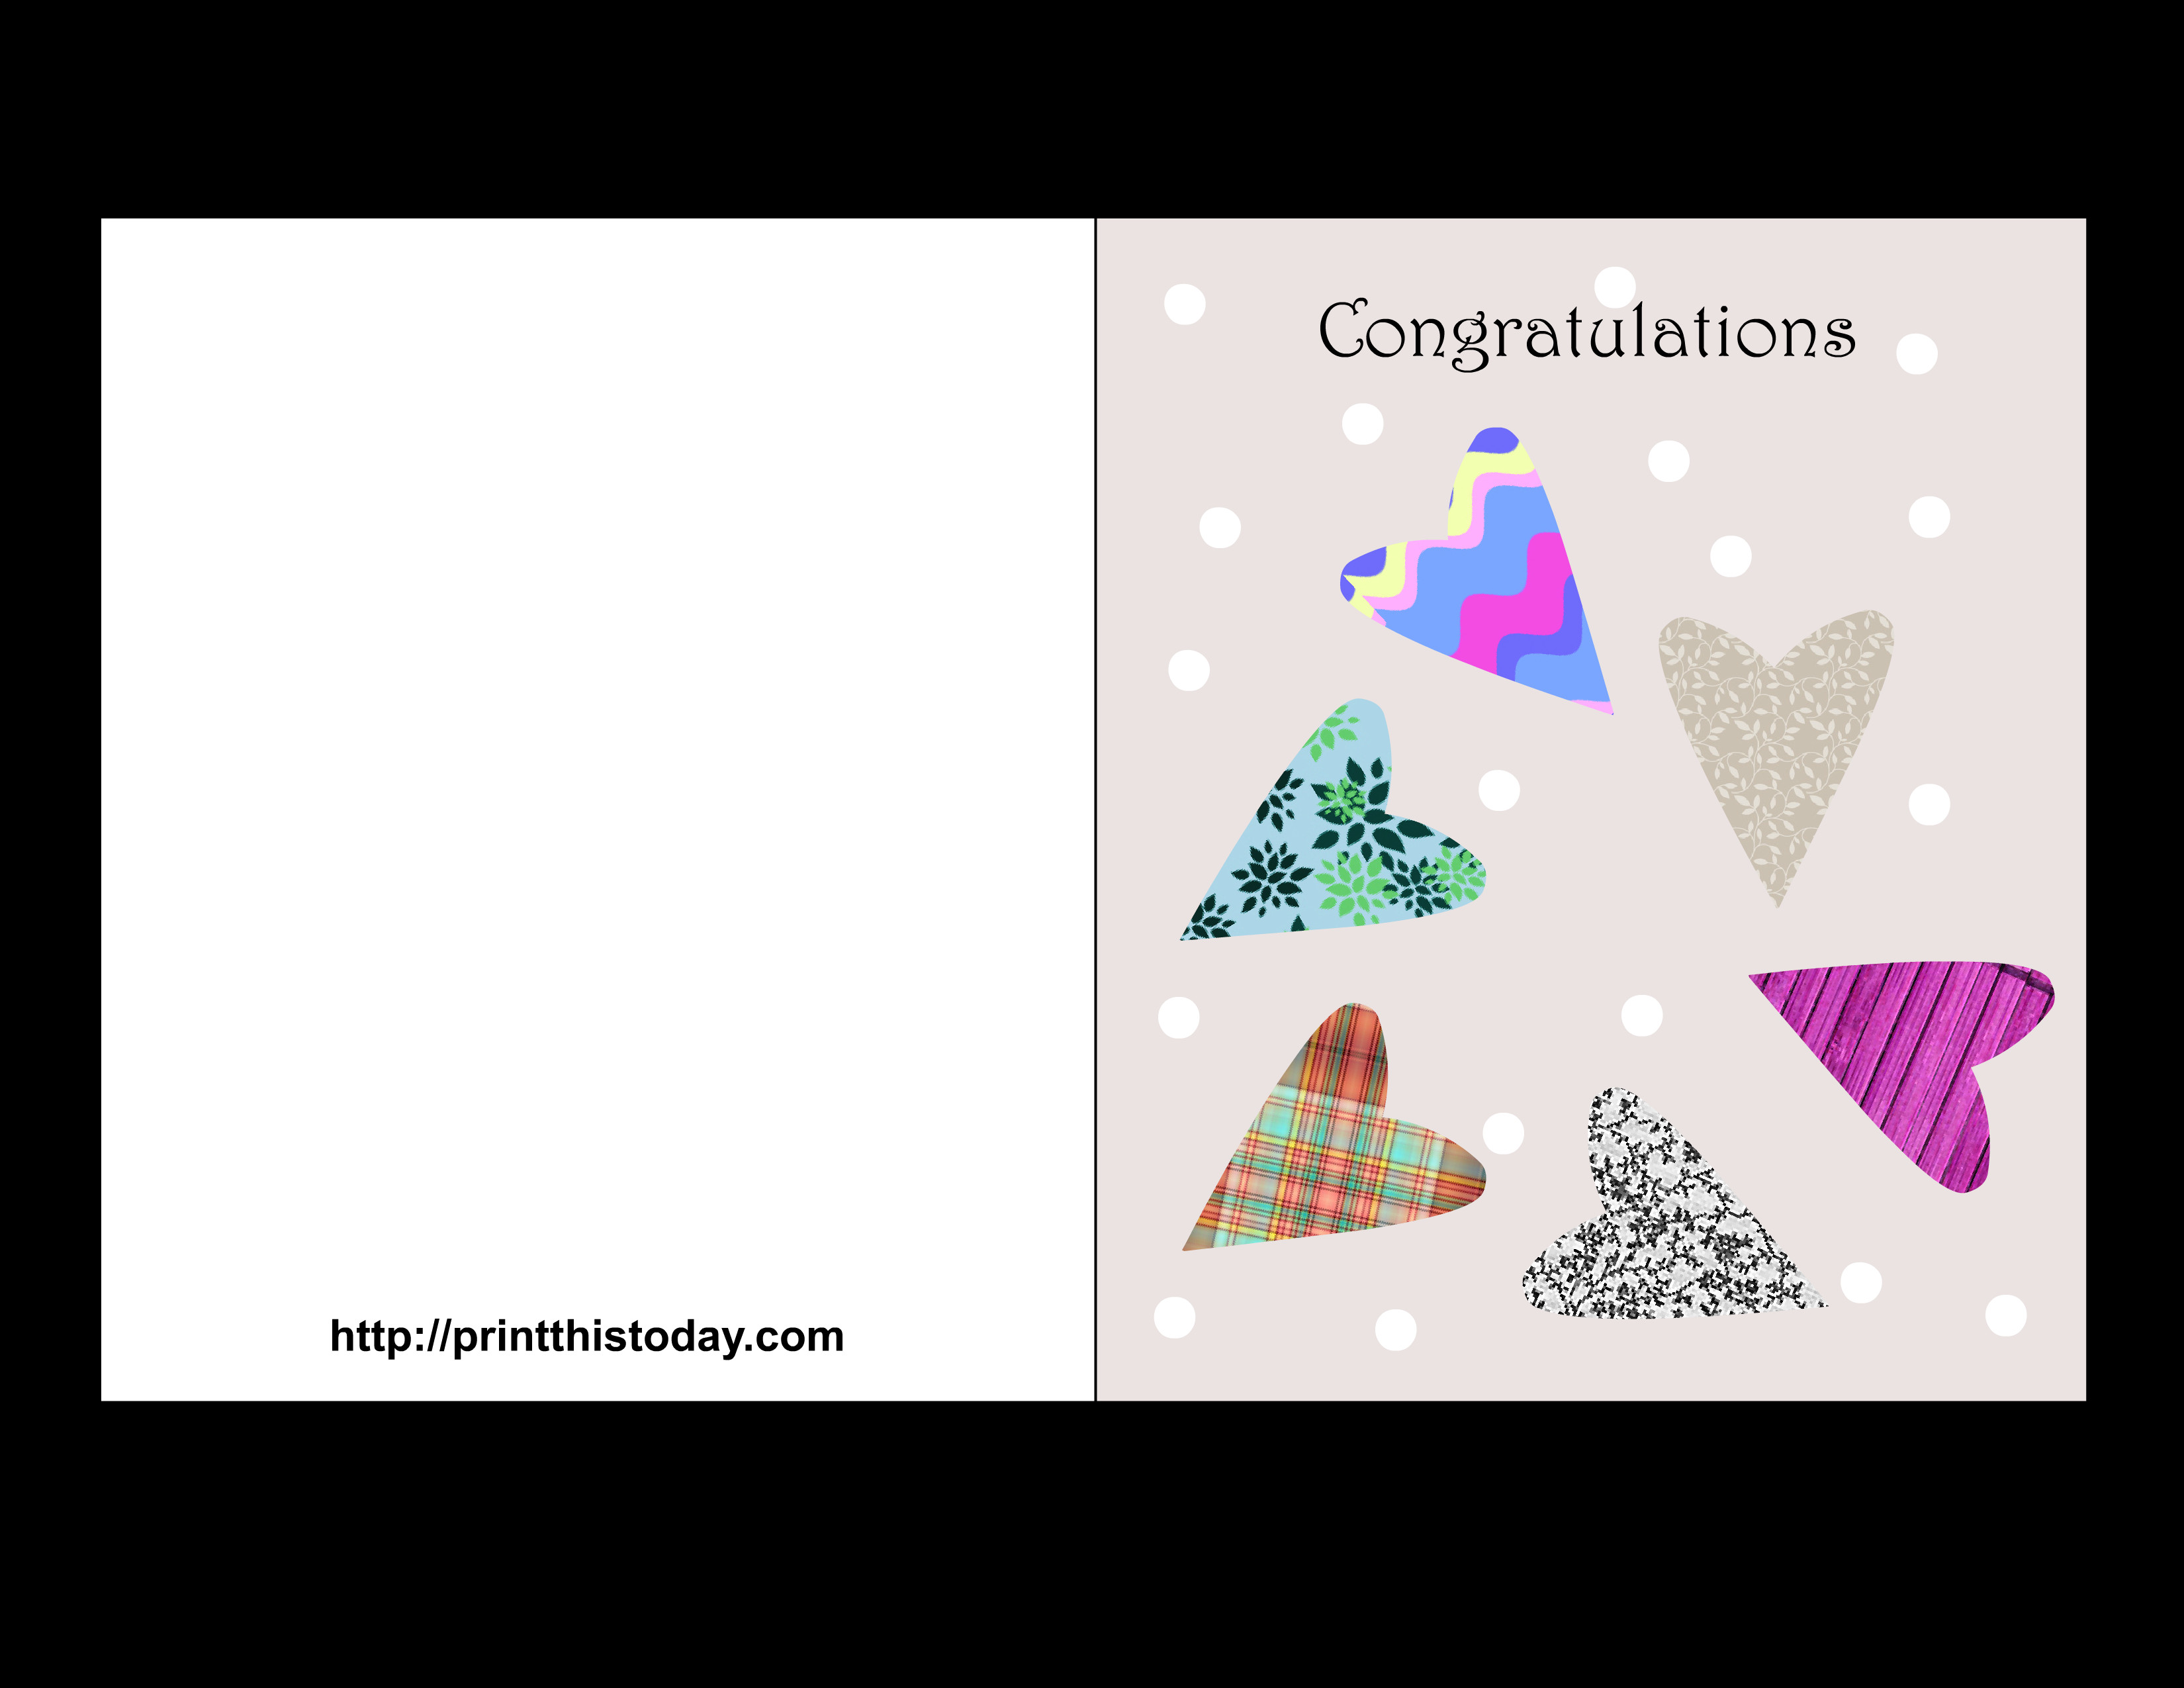 Printable Greetings Cards Templates Free Printable Wedding Congratulations Cards